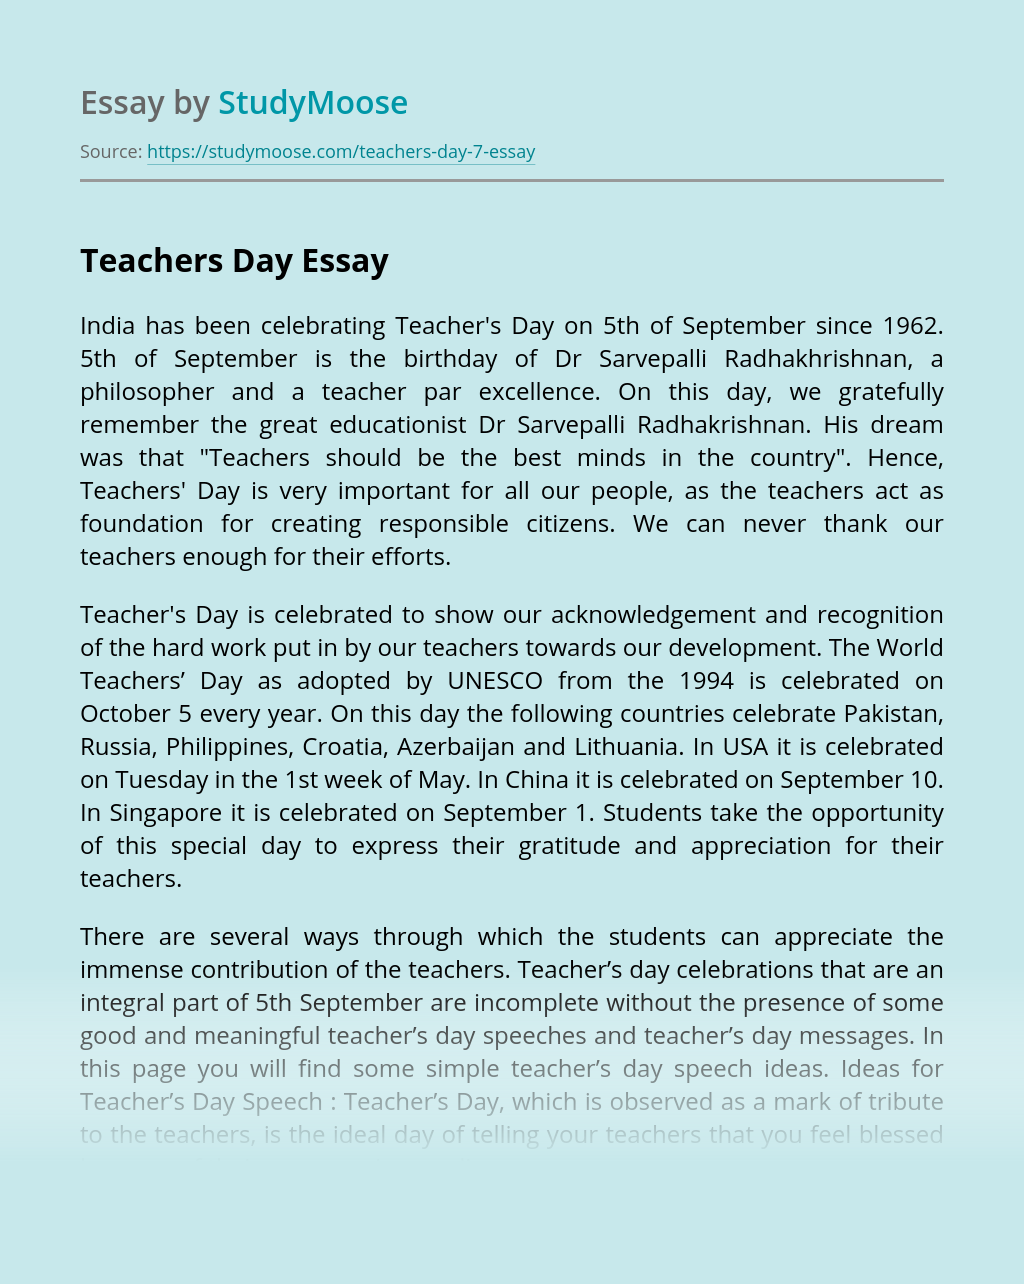 Essay topics for teachers day popular university essay writers for hire au